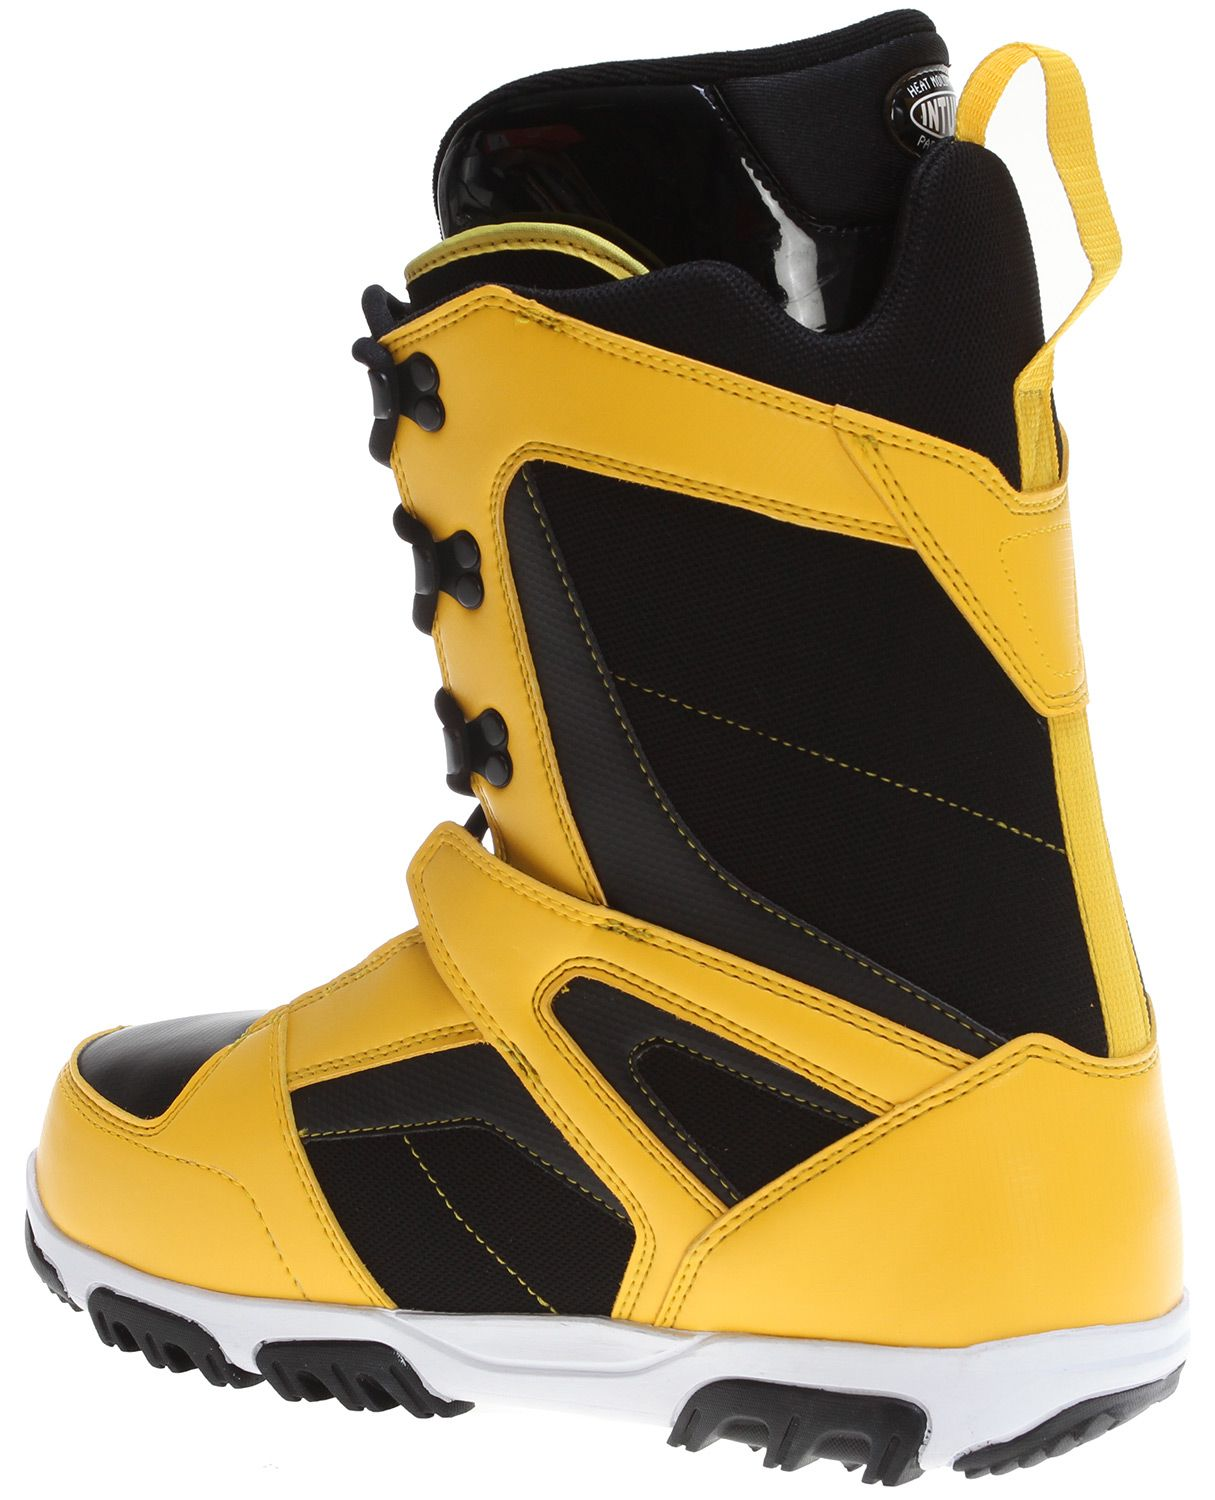 32 Thirty Two Prion Snowboard Boots Snowboard Boots Snowboard Comfortable Boots